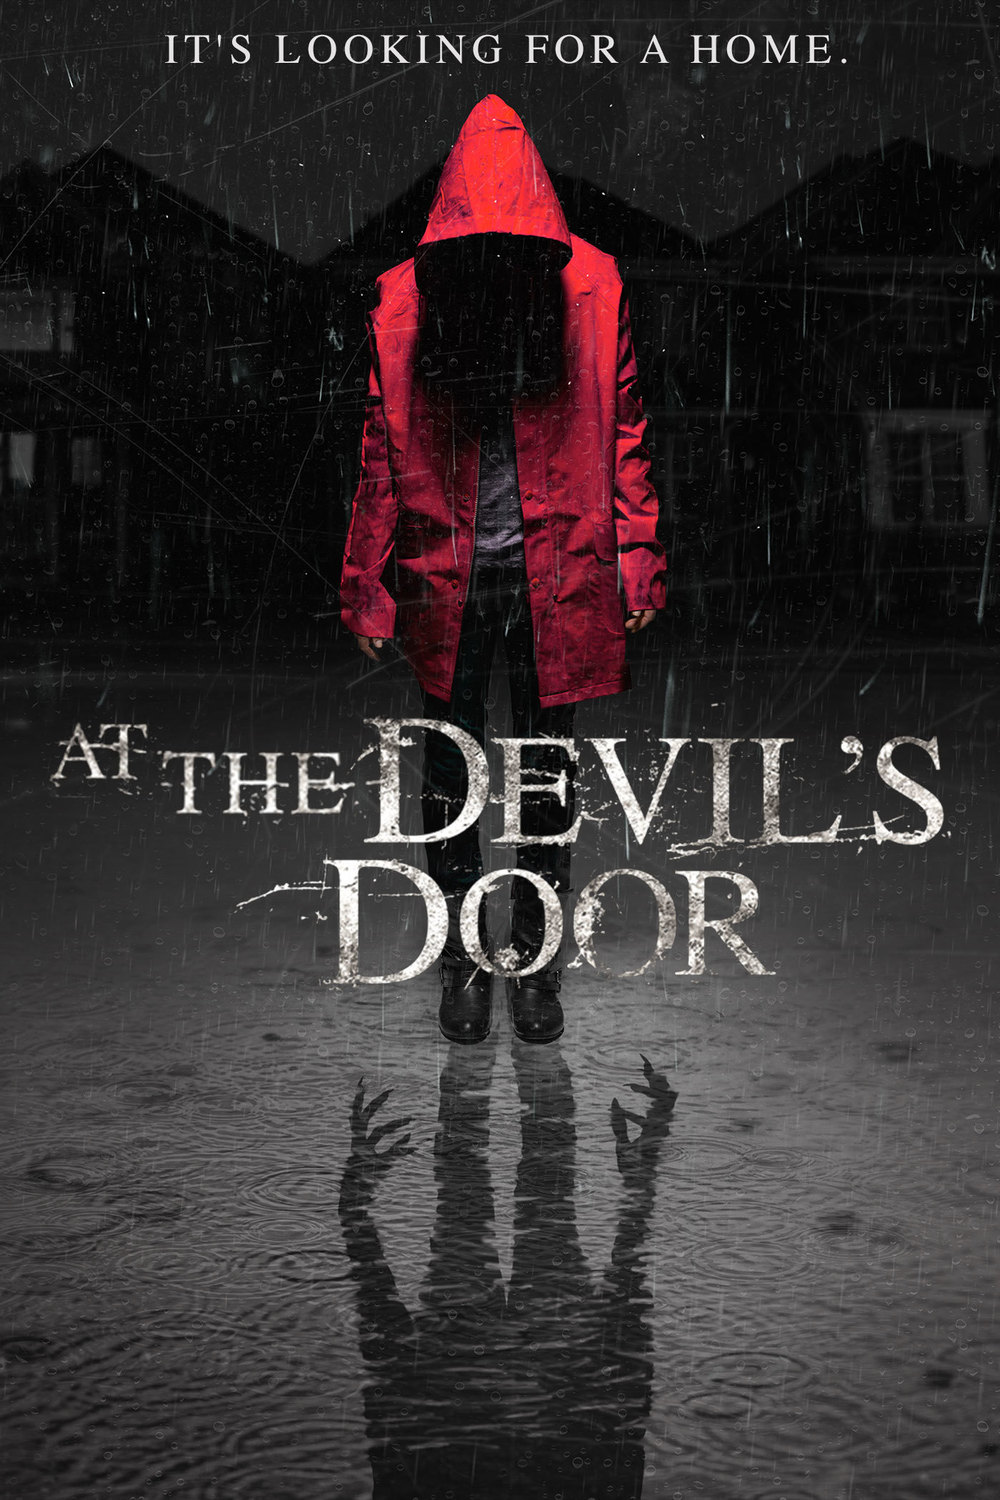 The DevilS Doorway